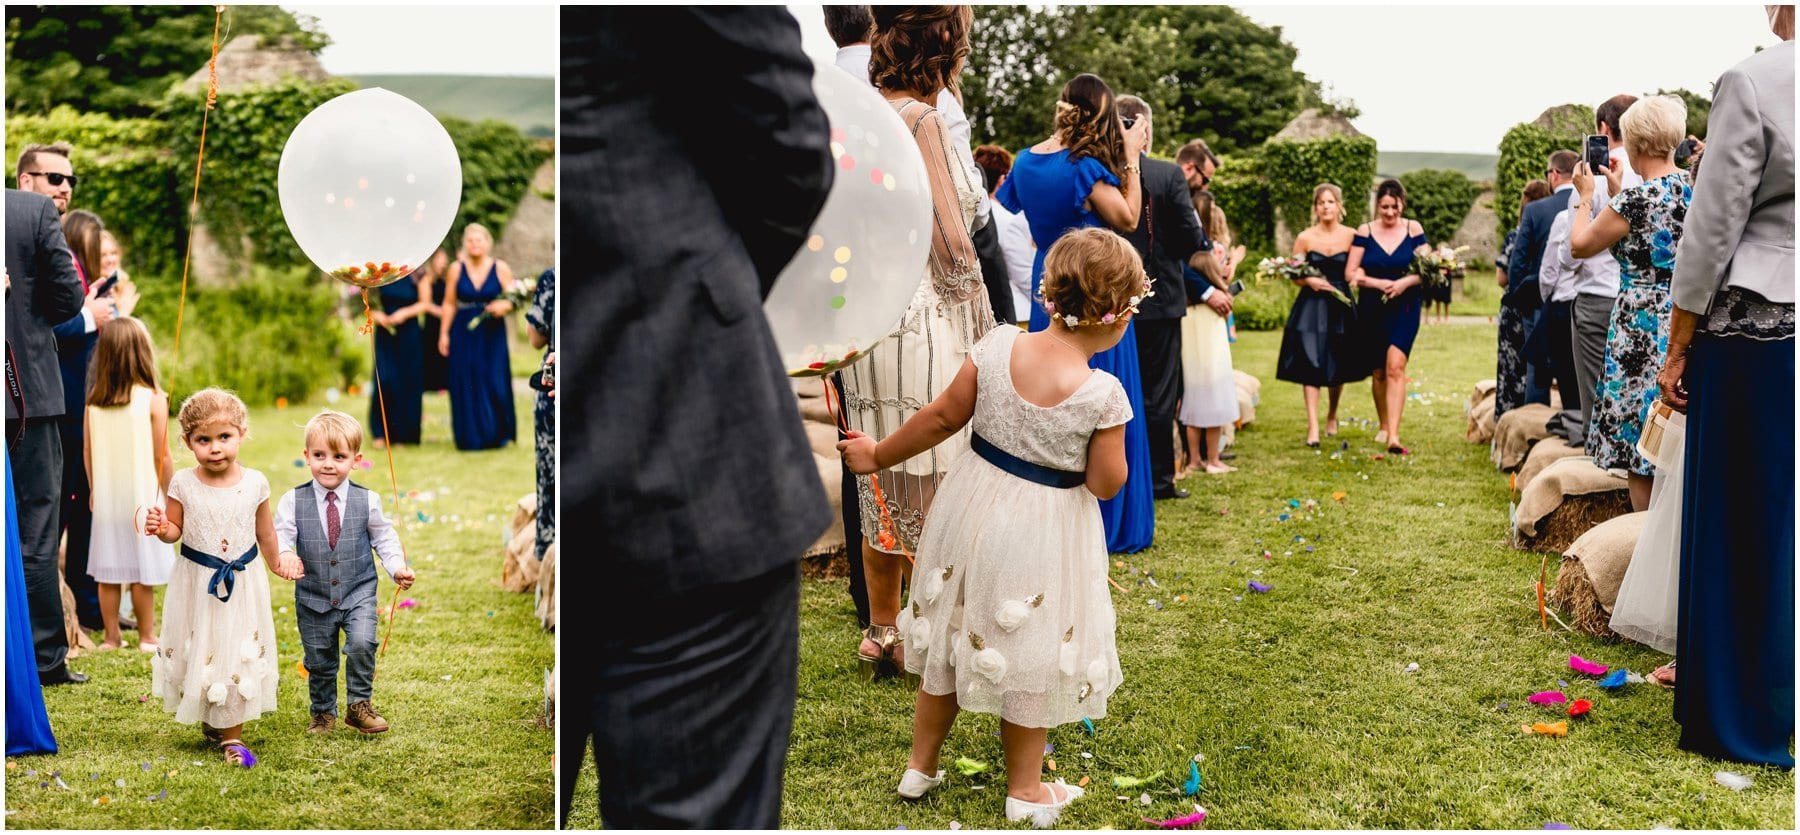 Flower girl and page boy walk down aisle at outdoor ceremony at Ash Barton Estate in Devon.